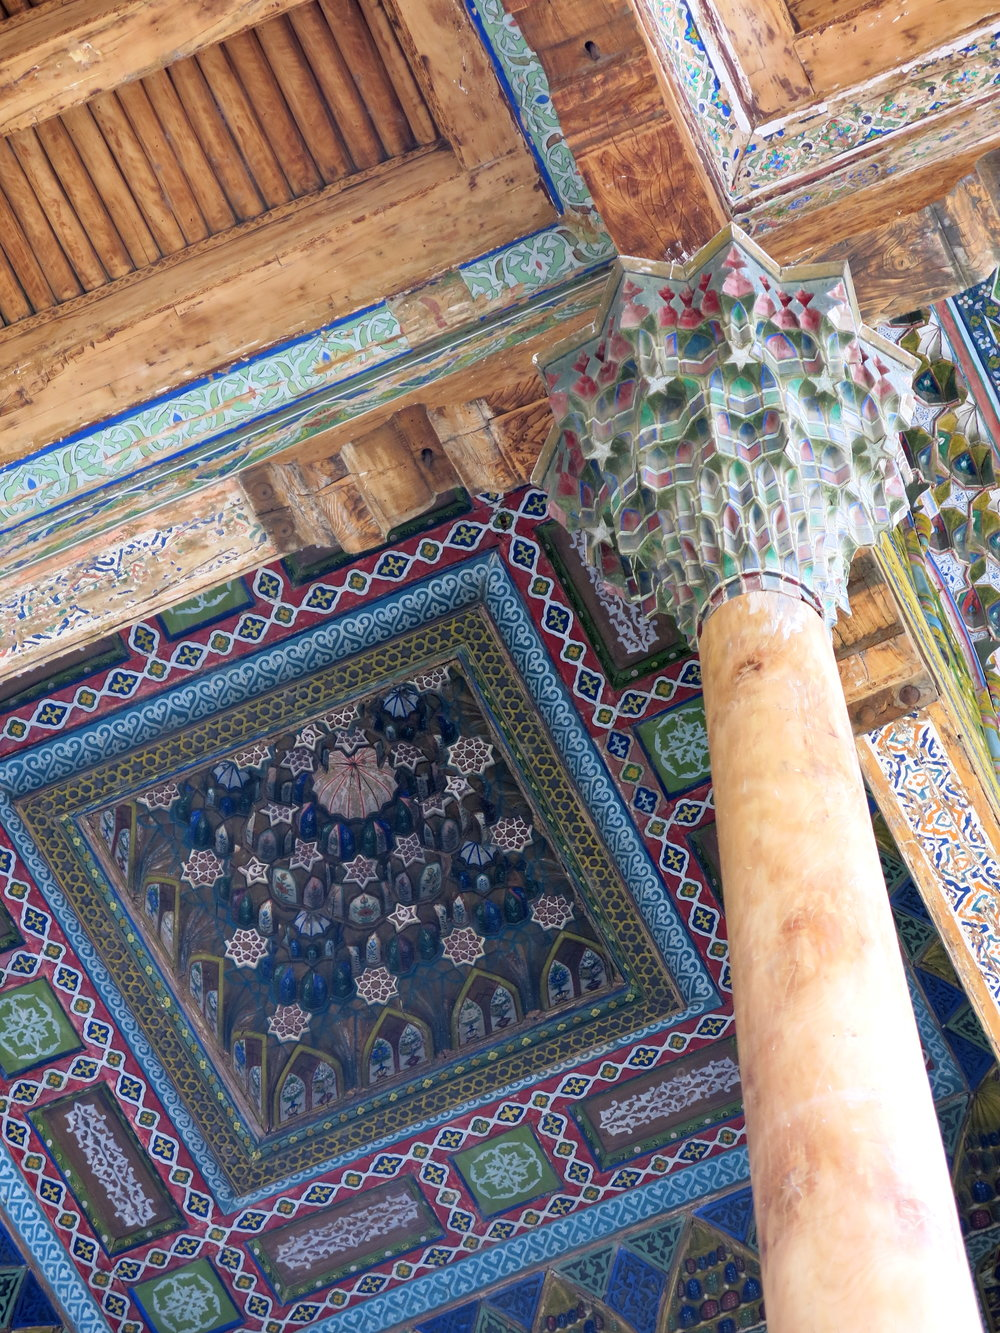 The honeycomb vaulting on the pillar and ceiling are called muqarnas